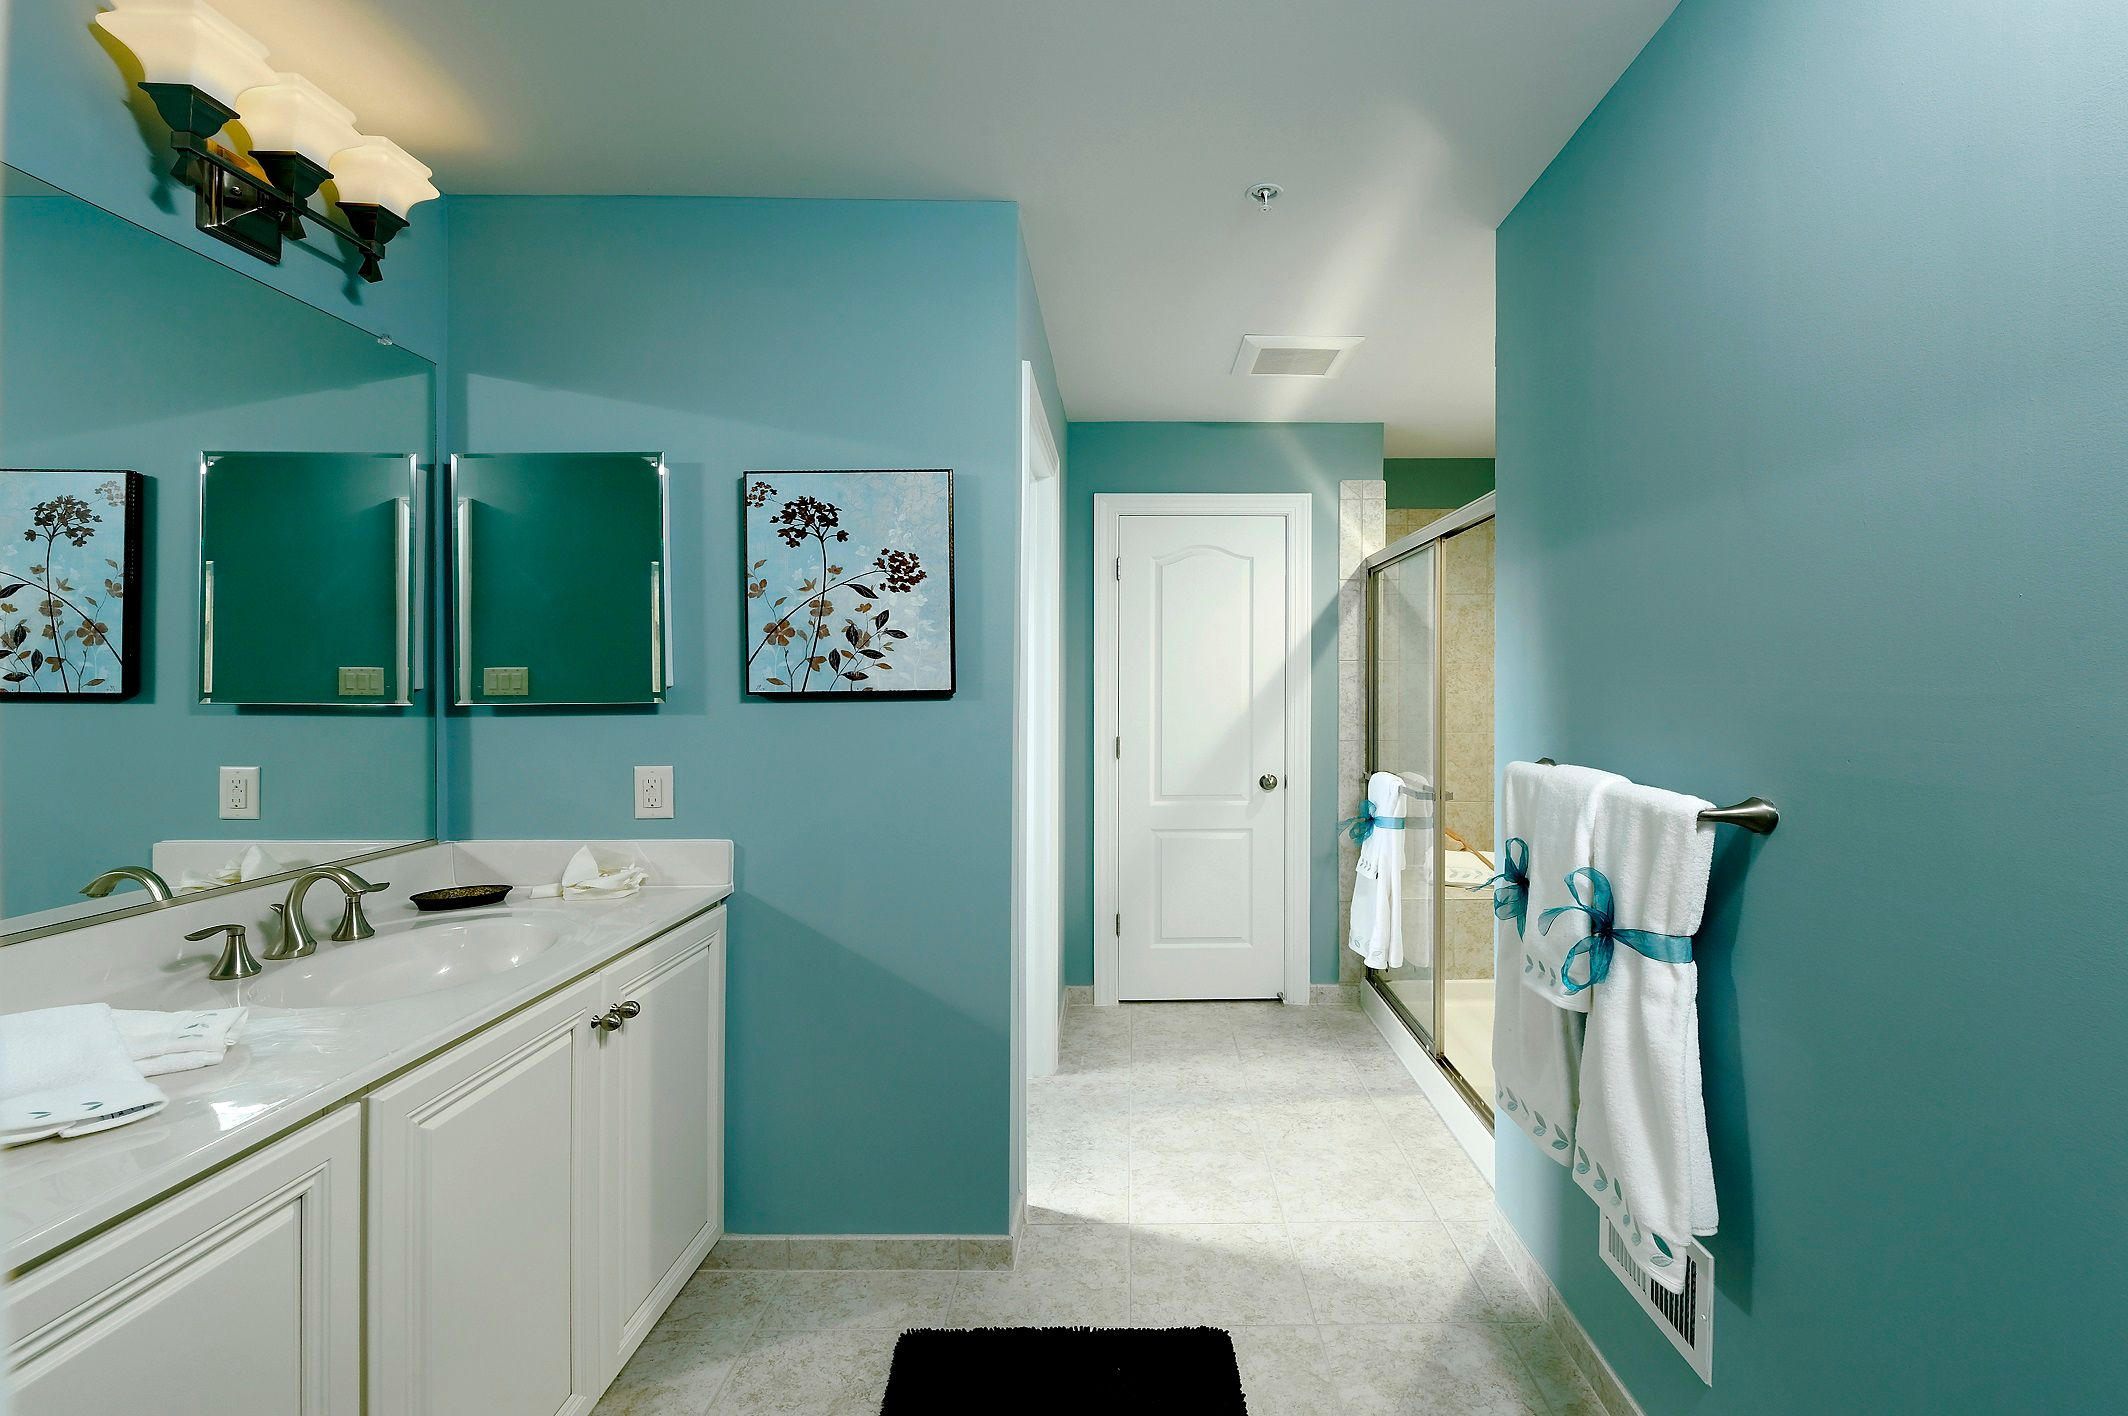 Bathroom featured in the Ellicott II By Williamsburg Homes LLC in Baltimore, MD